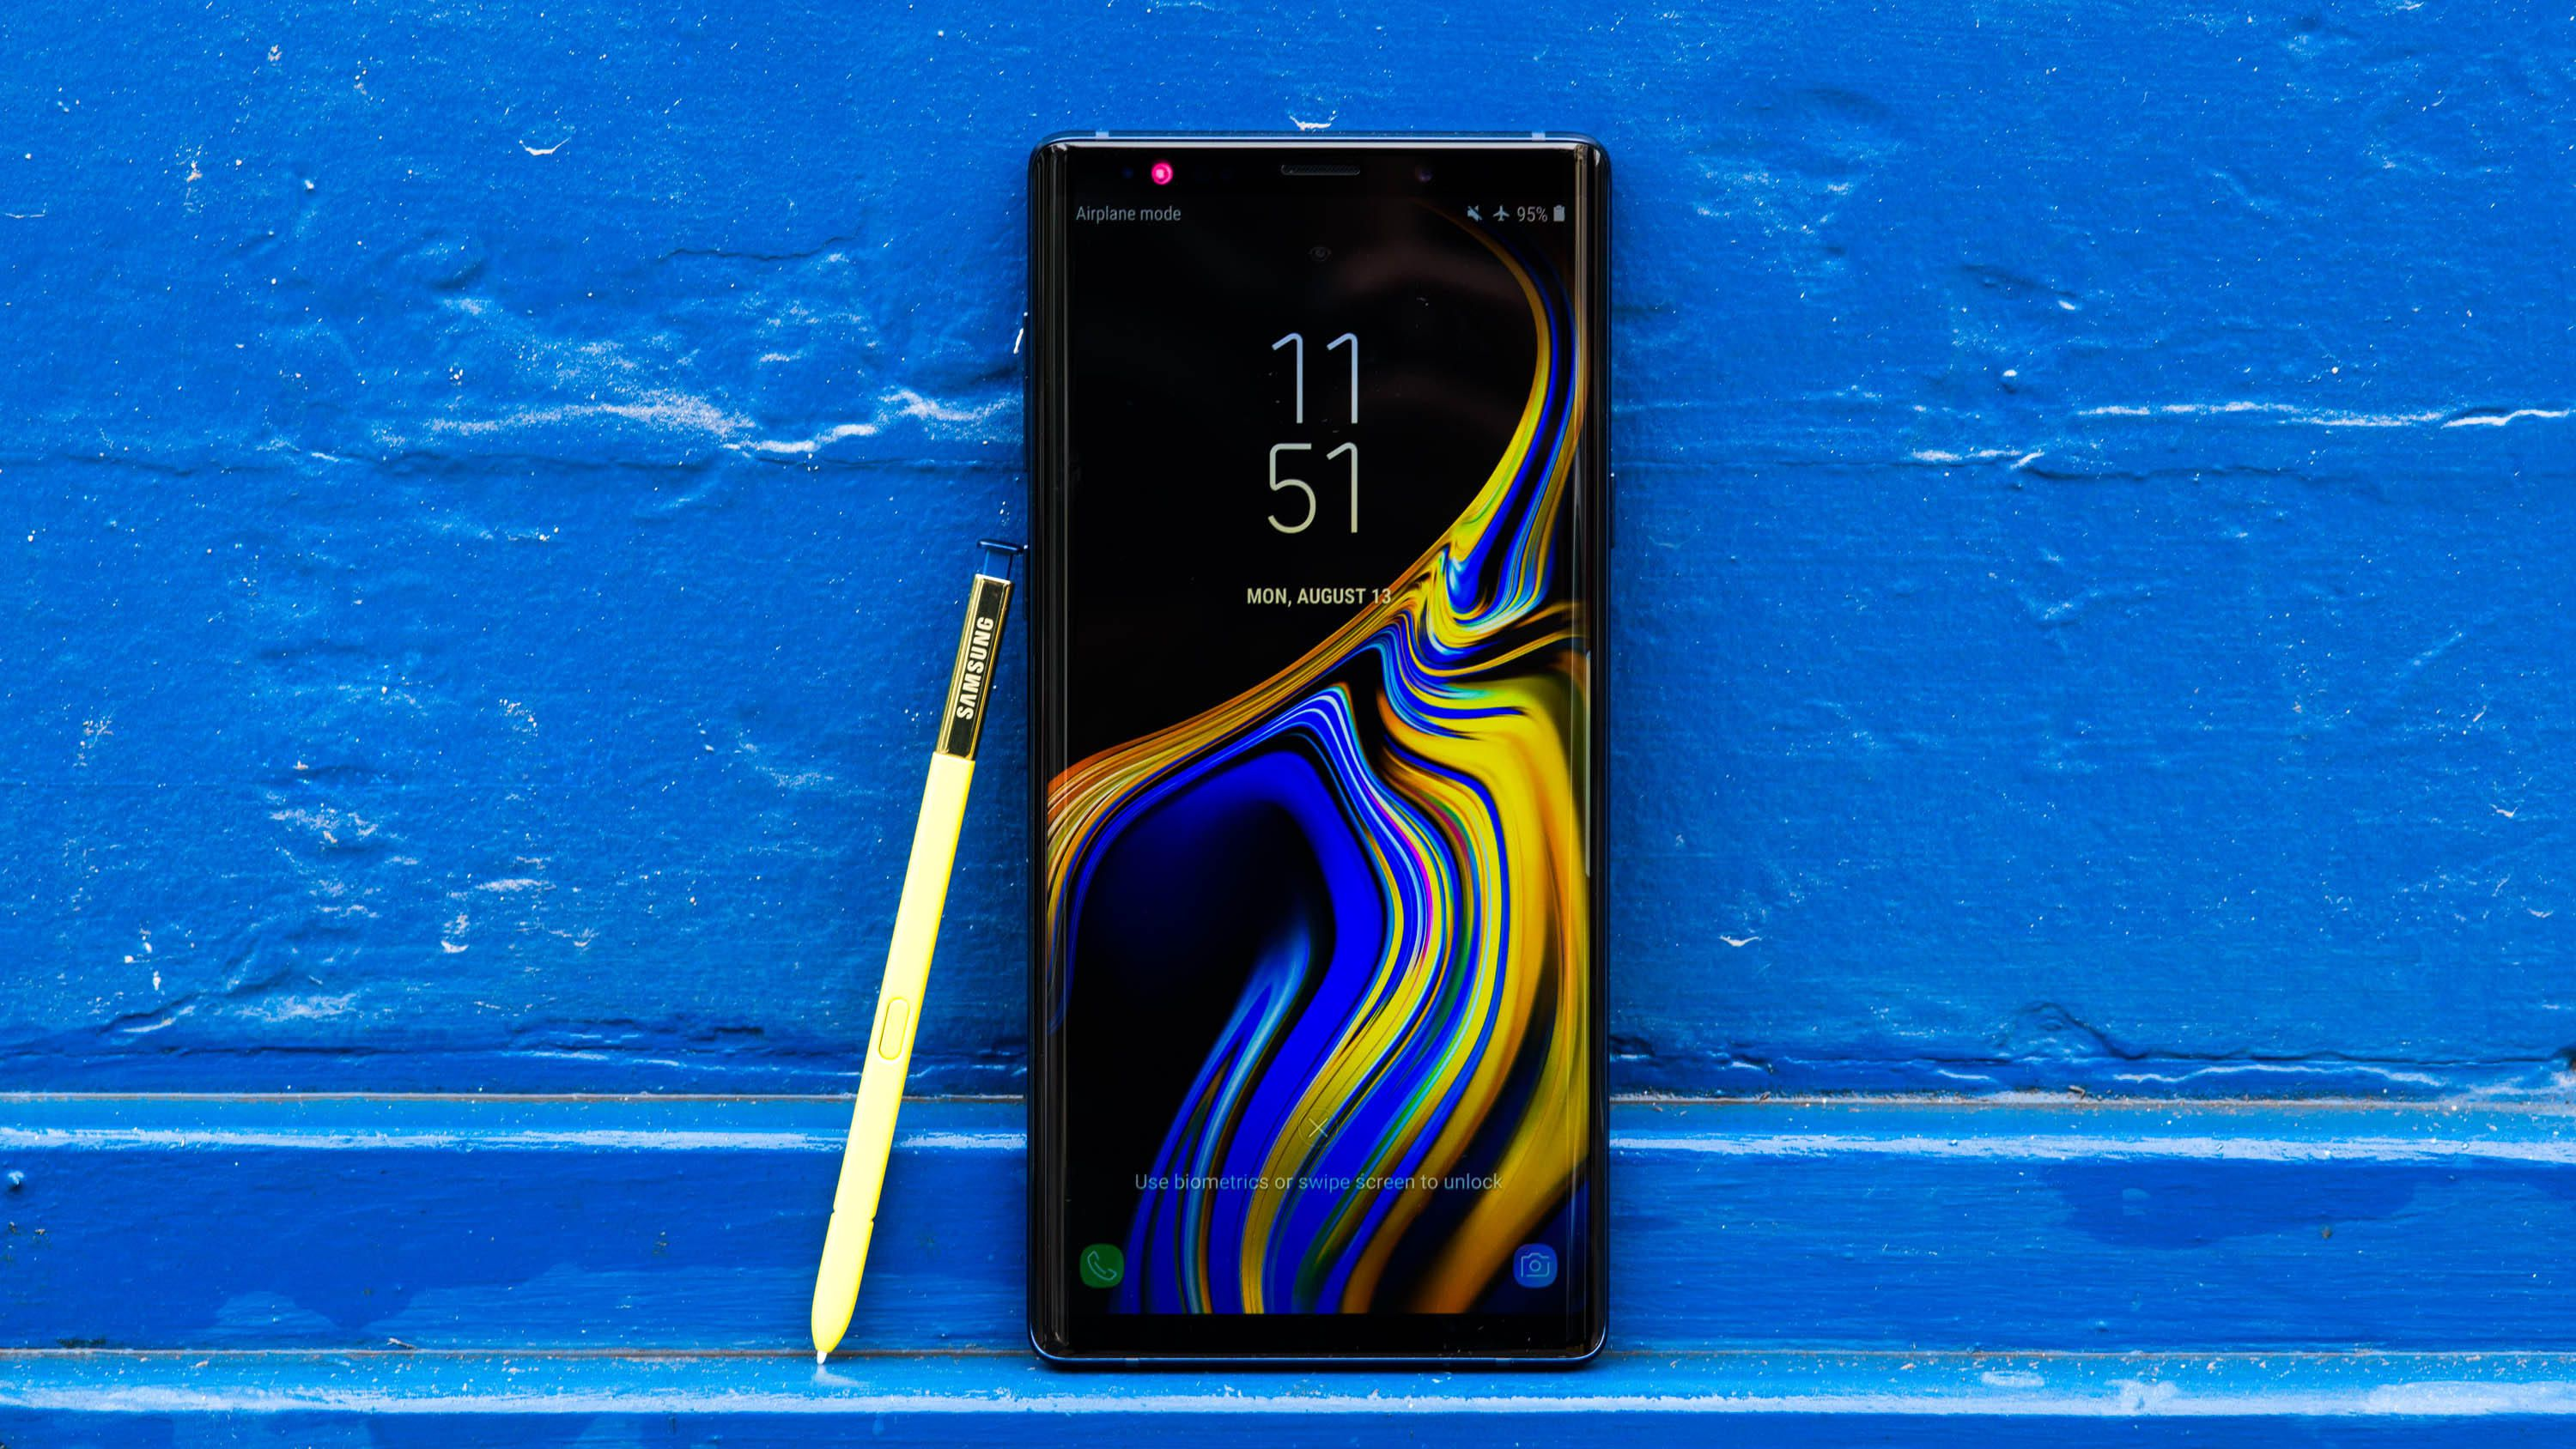 Galaxy Note 9 Updates Released After A Disappointing Sales